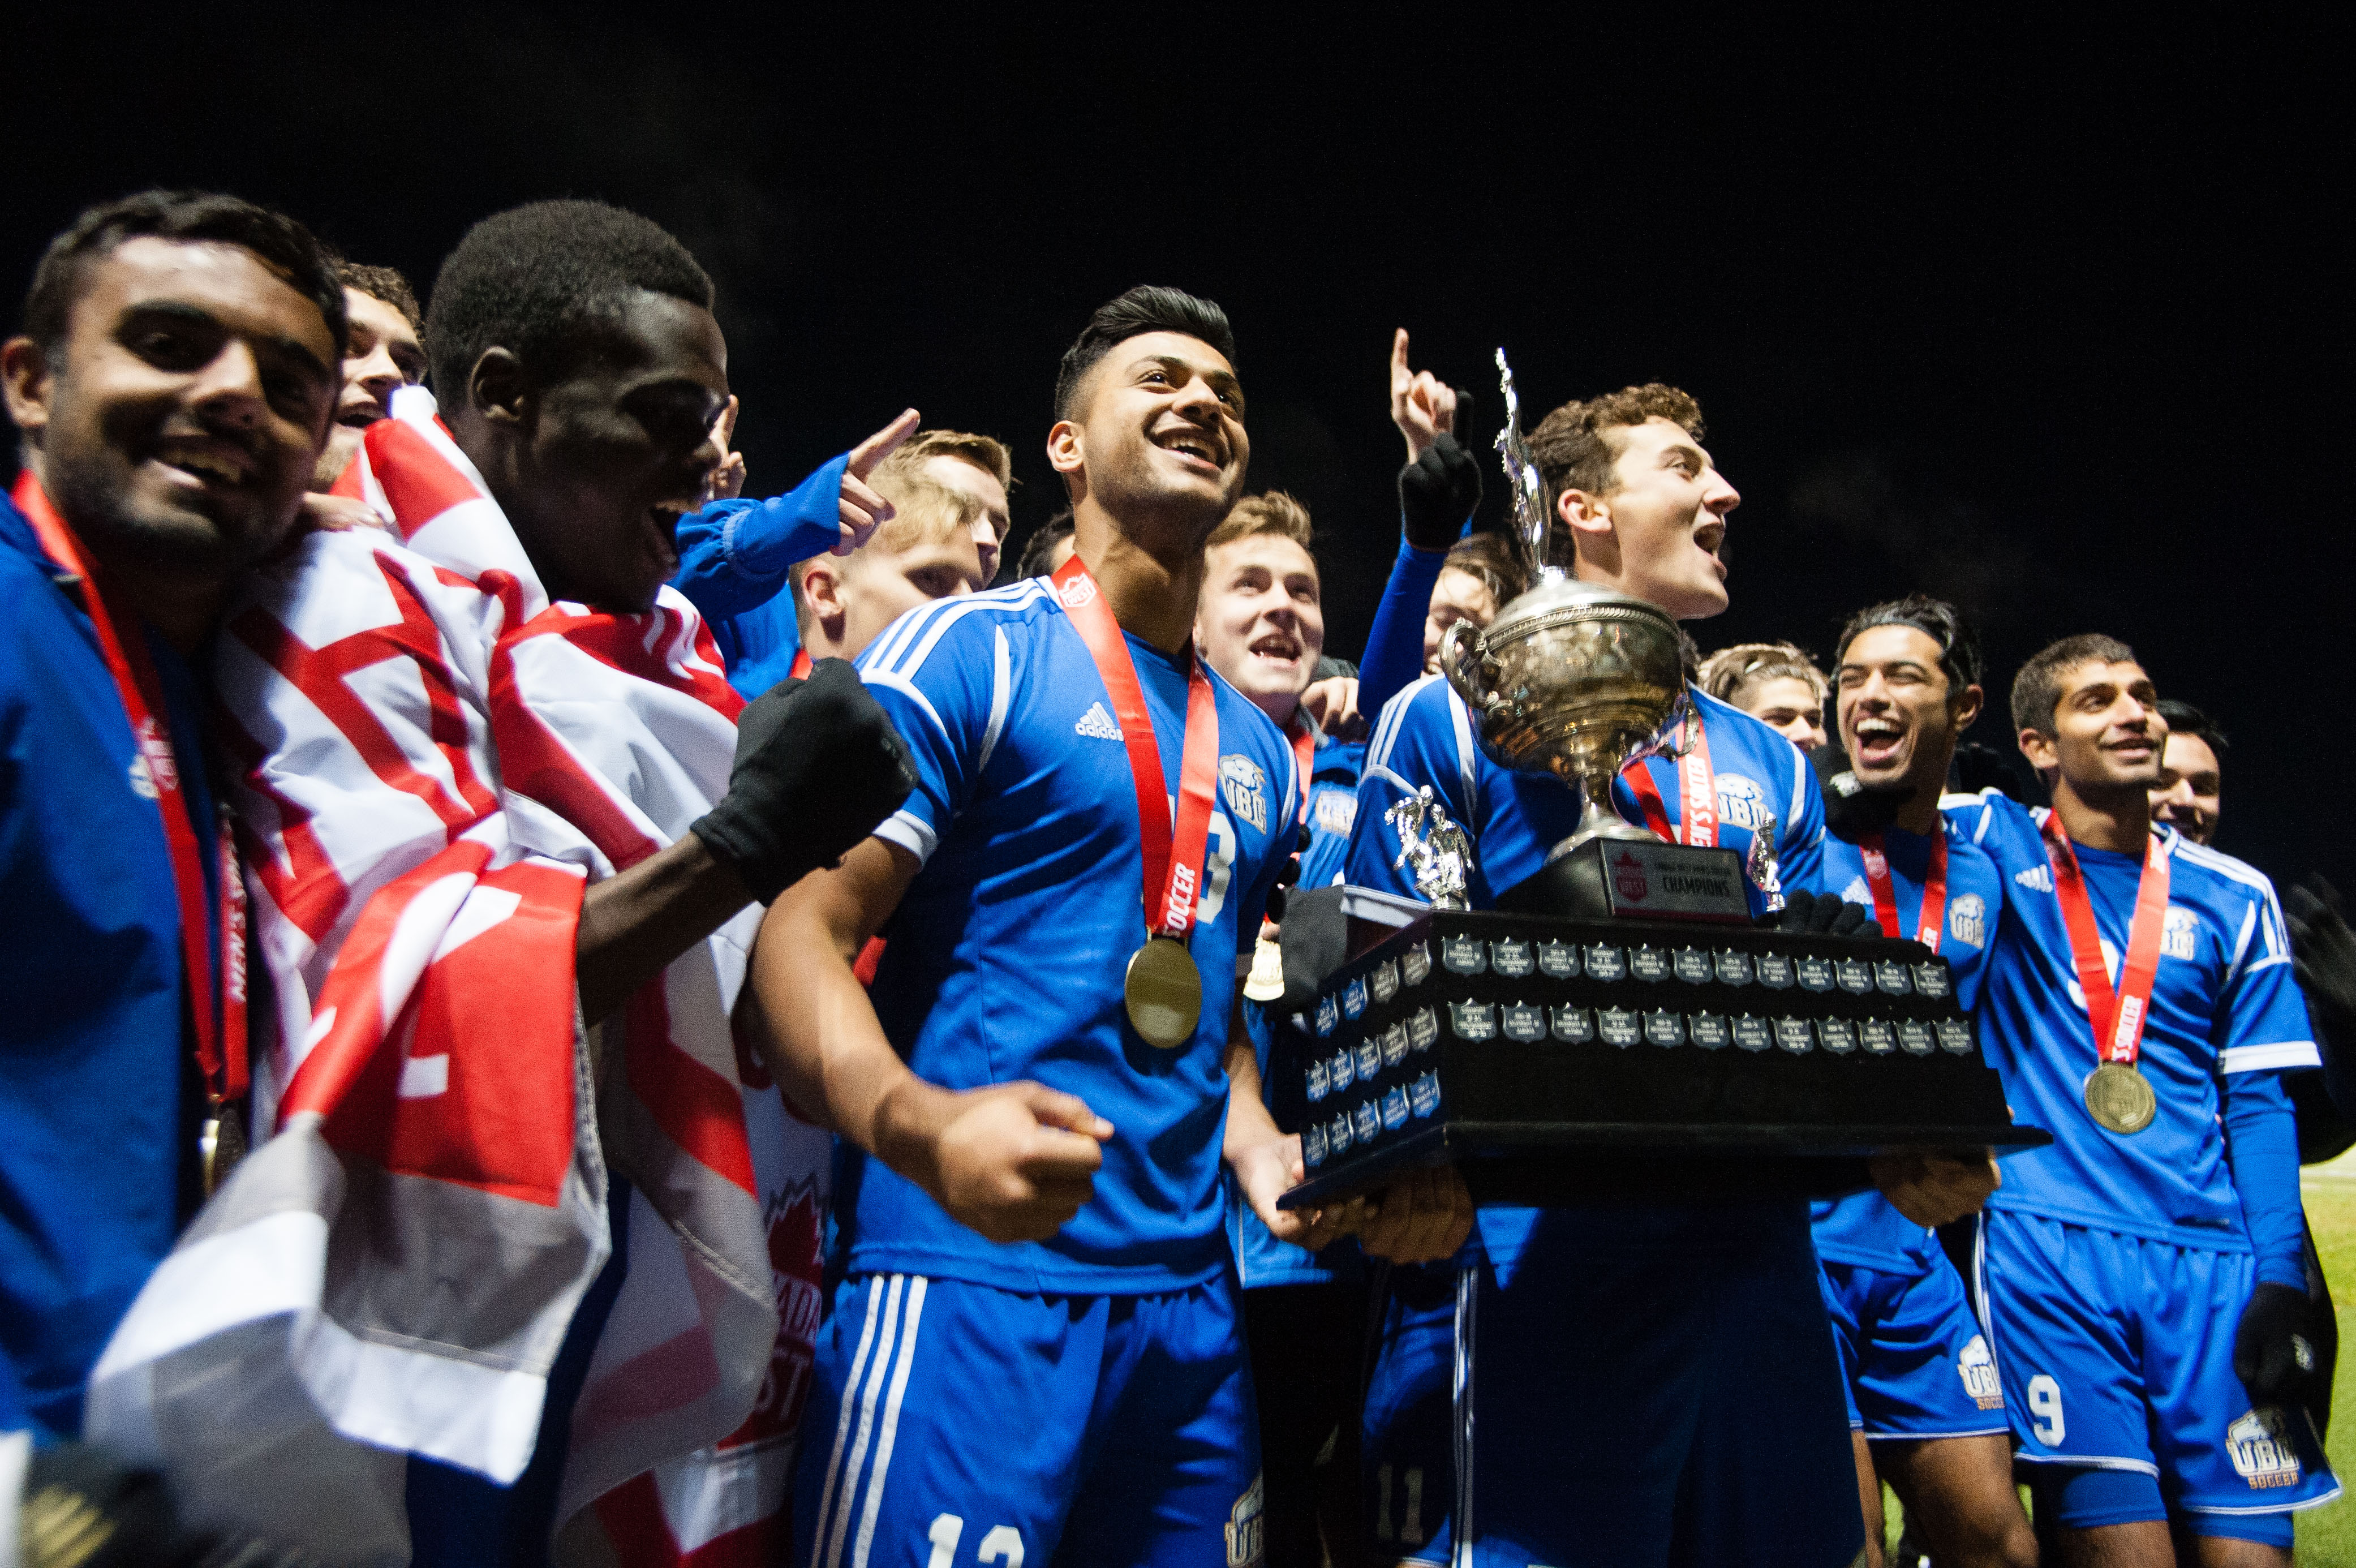 Men's soccer celebrate their Canada West title.